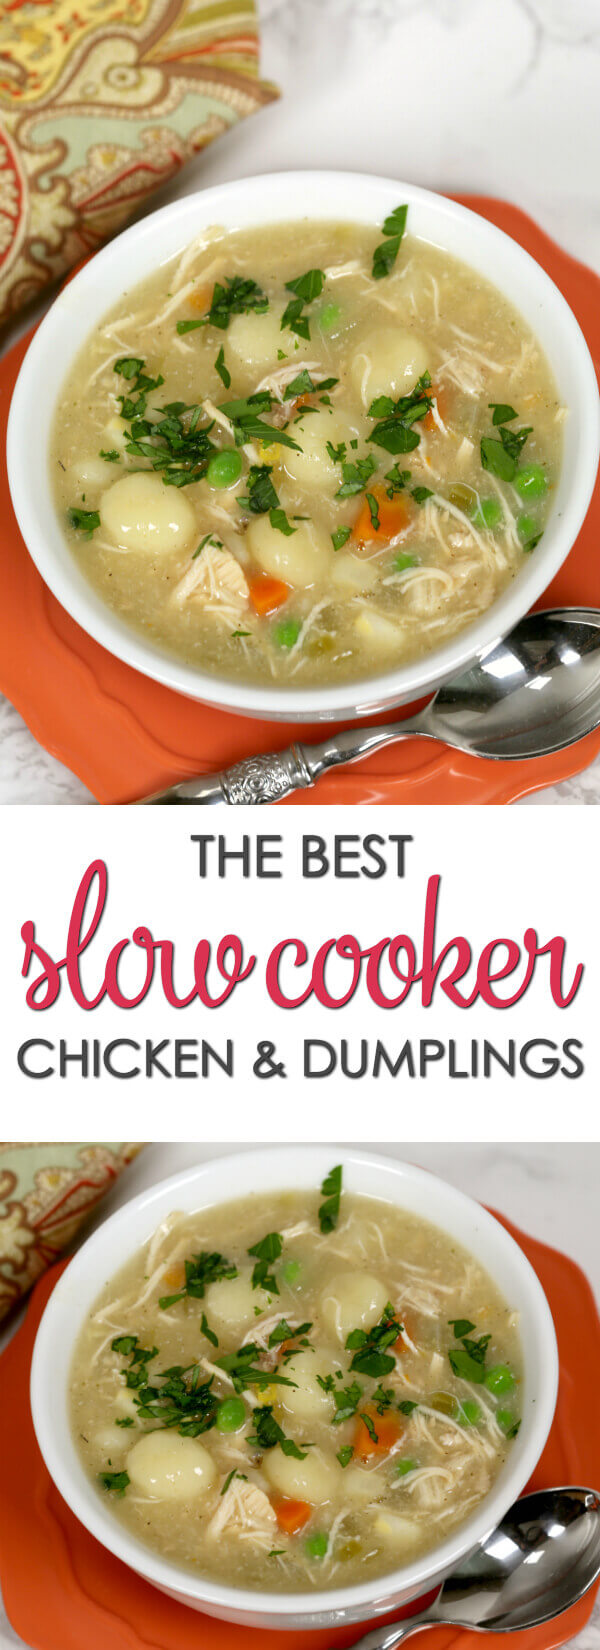 Slow Cooker Chicken and Dumplings - this is one of the best crock pot recipes for chicken